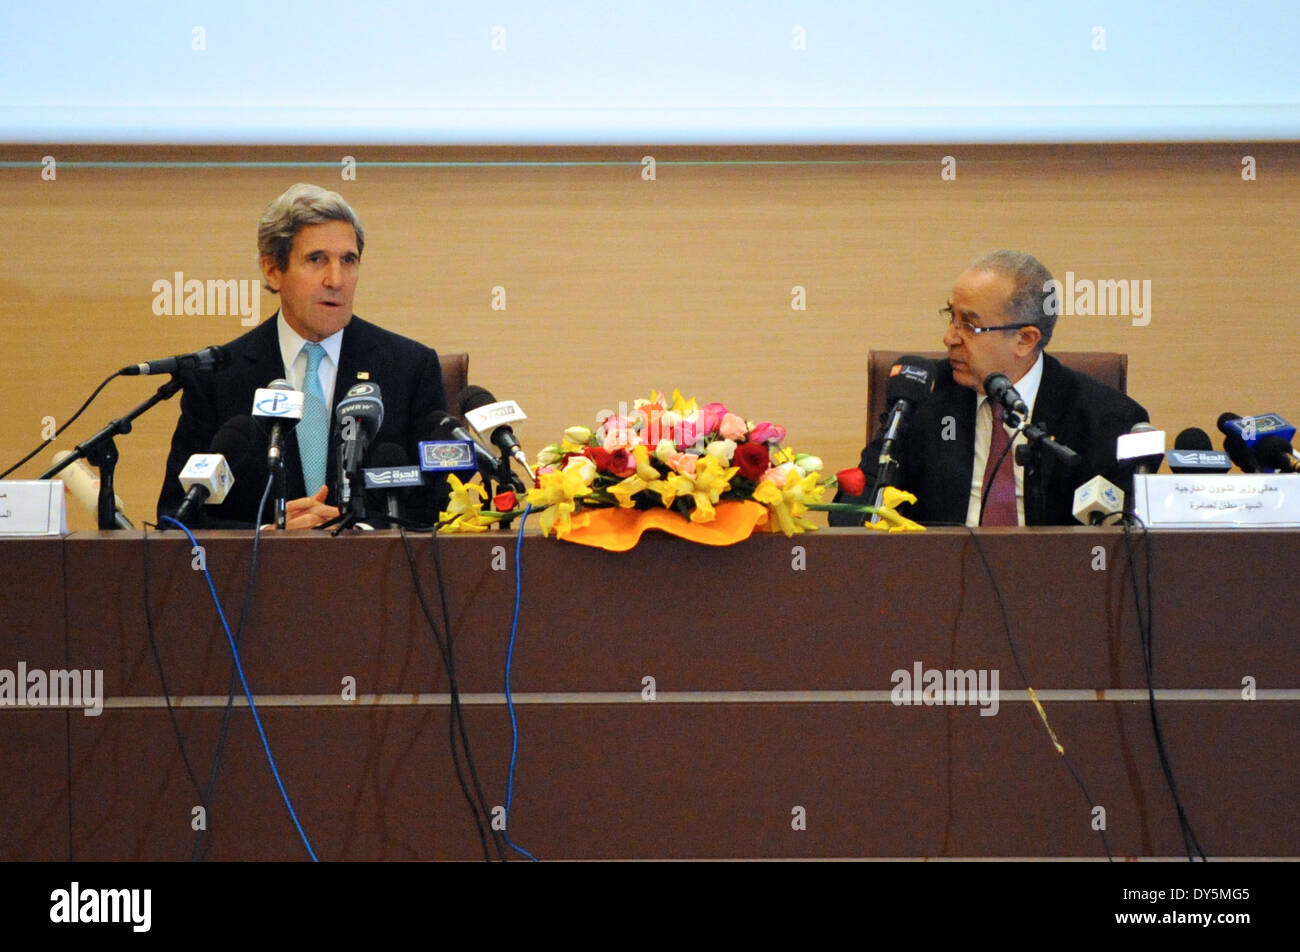 Secretary Kerry and Algerian Foreign Minister Open Strategic Dialogue Between Their Countries - Stock Image